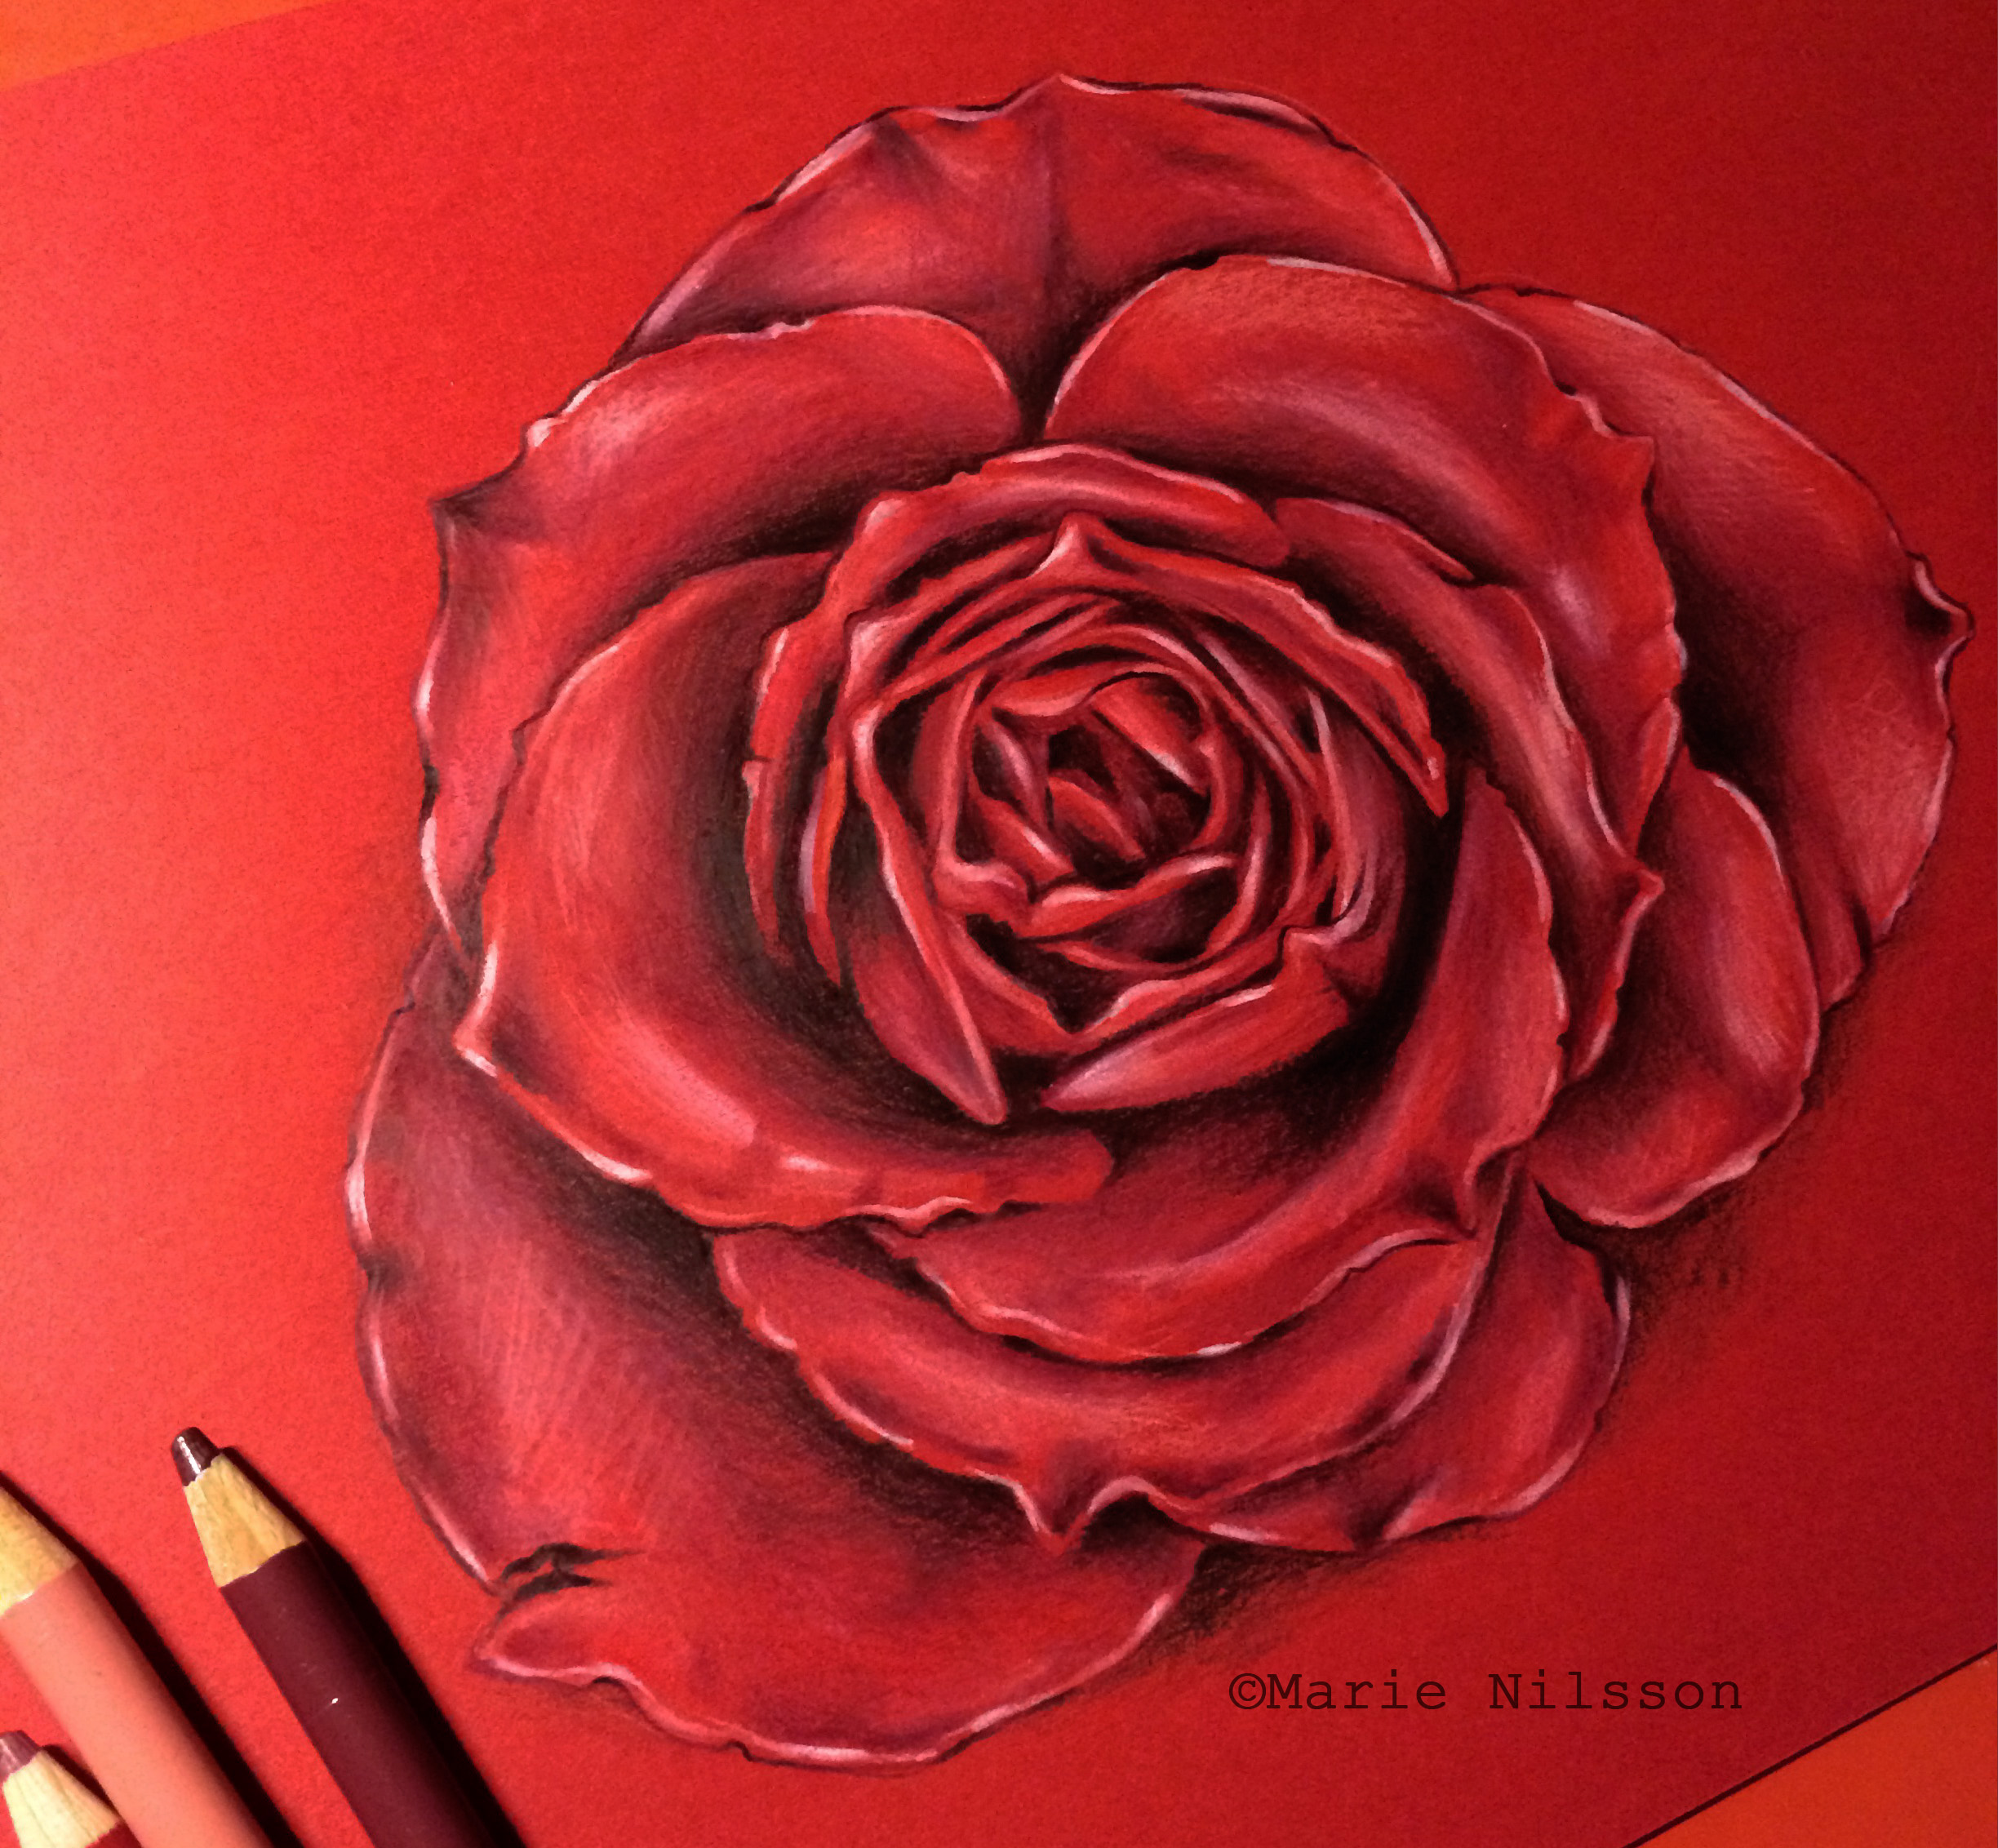 Drawn red rose realistic Study rose deviantart com rose